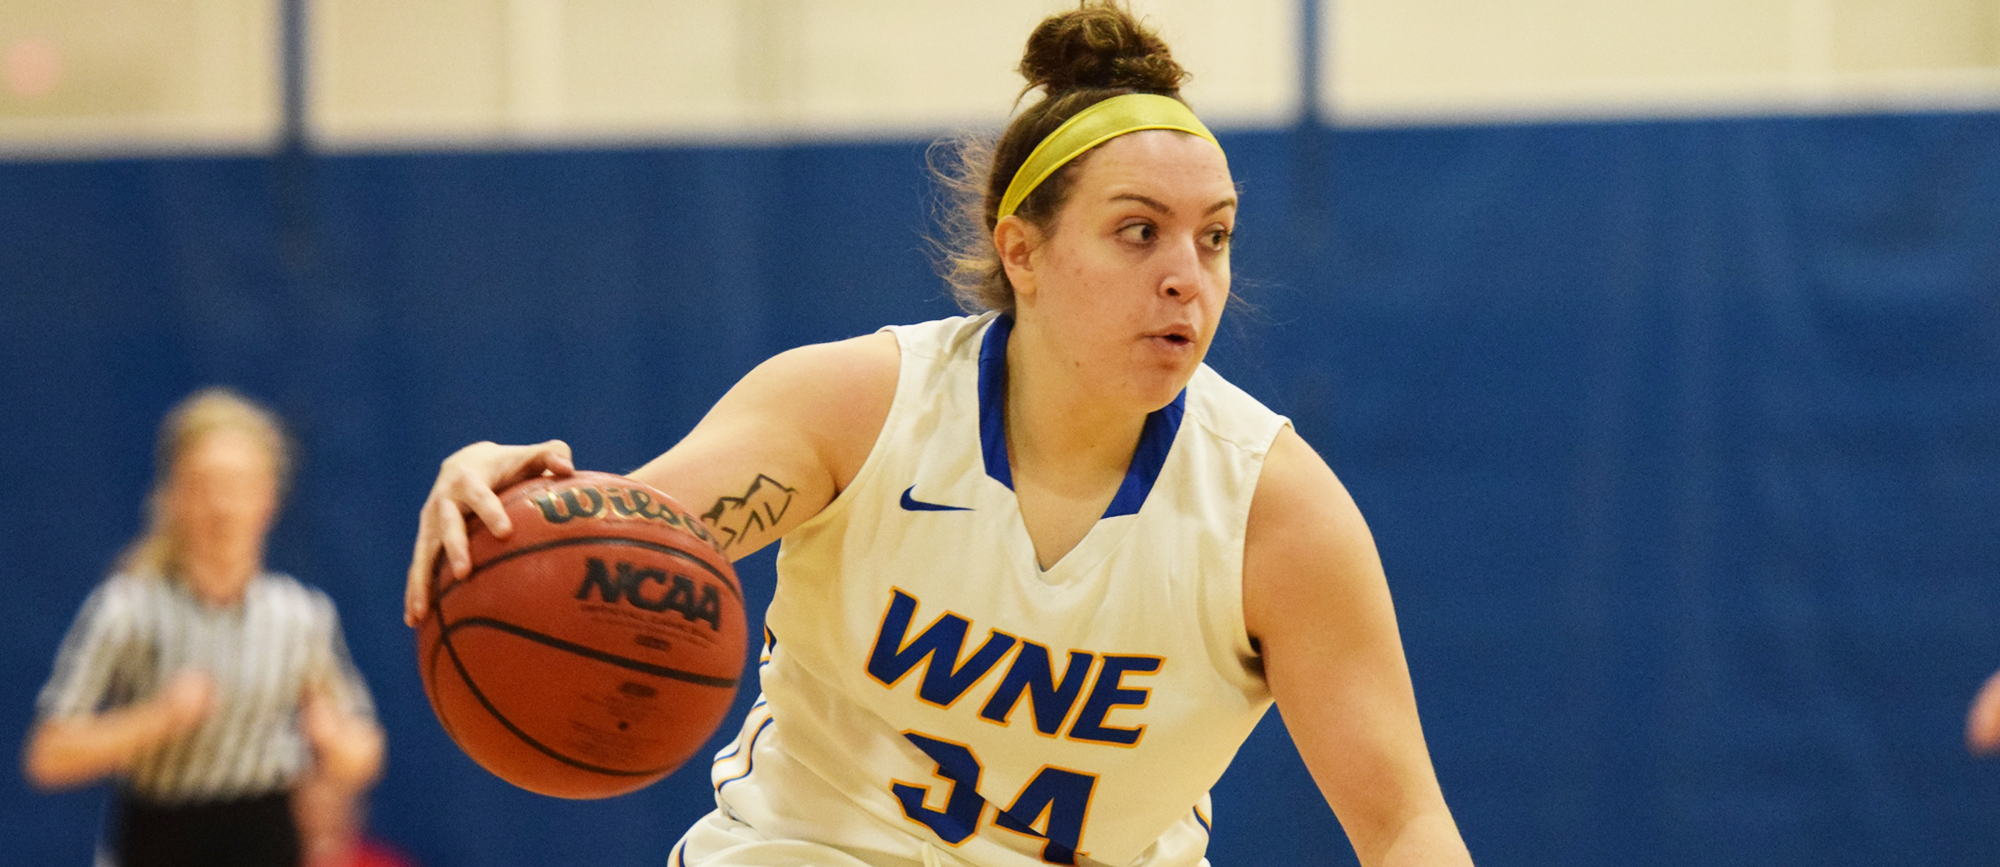 Sophomore Julia Quinn scored 9 of her 12 points in the fourth quarter of Western New England's 65-60 win at UNE on Saturday. (Photo by Rachael Margossian)